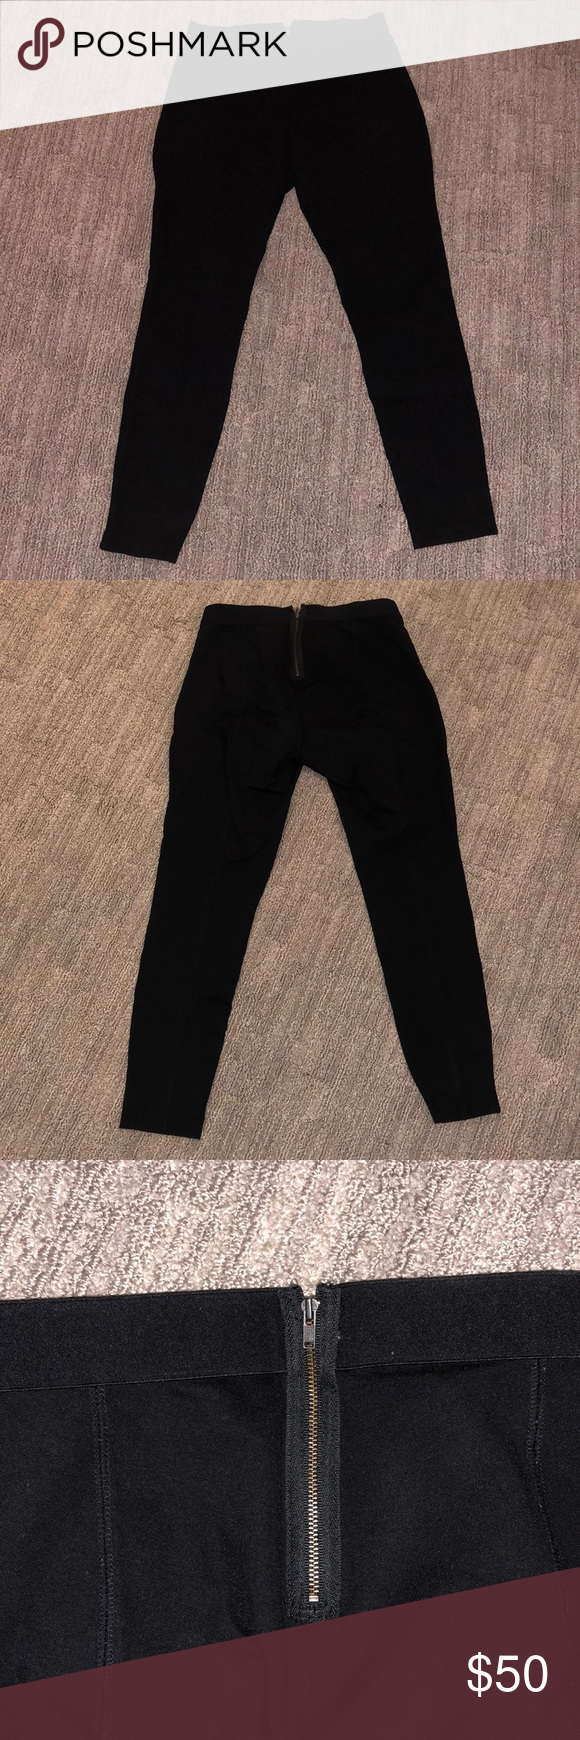 J. crew black pixie pants lightly worn Great condition. Worn a few times. Dress pants but can be worn causally for any occasions, dress up or down! PRICE NOT FIXED, OPEN FOR NEGOTIATION- just make offer. J. Crew Pants